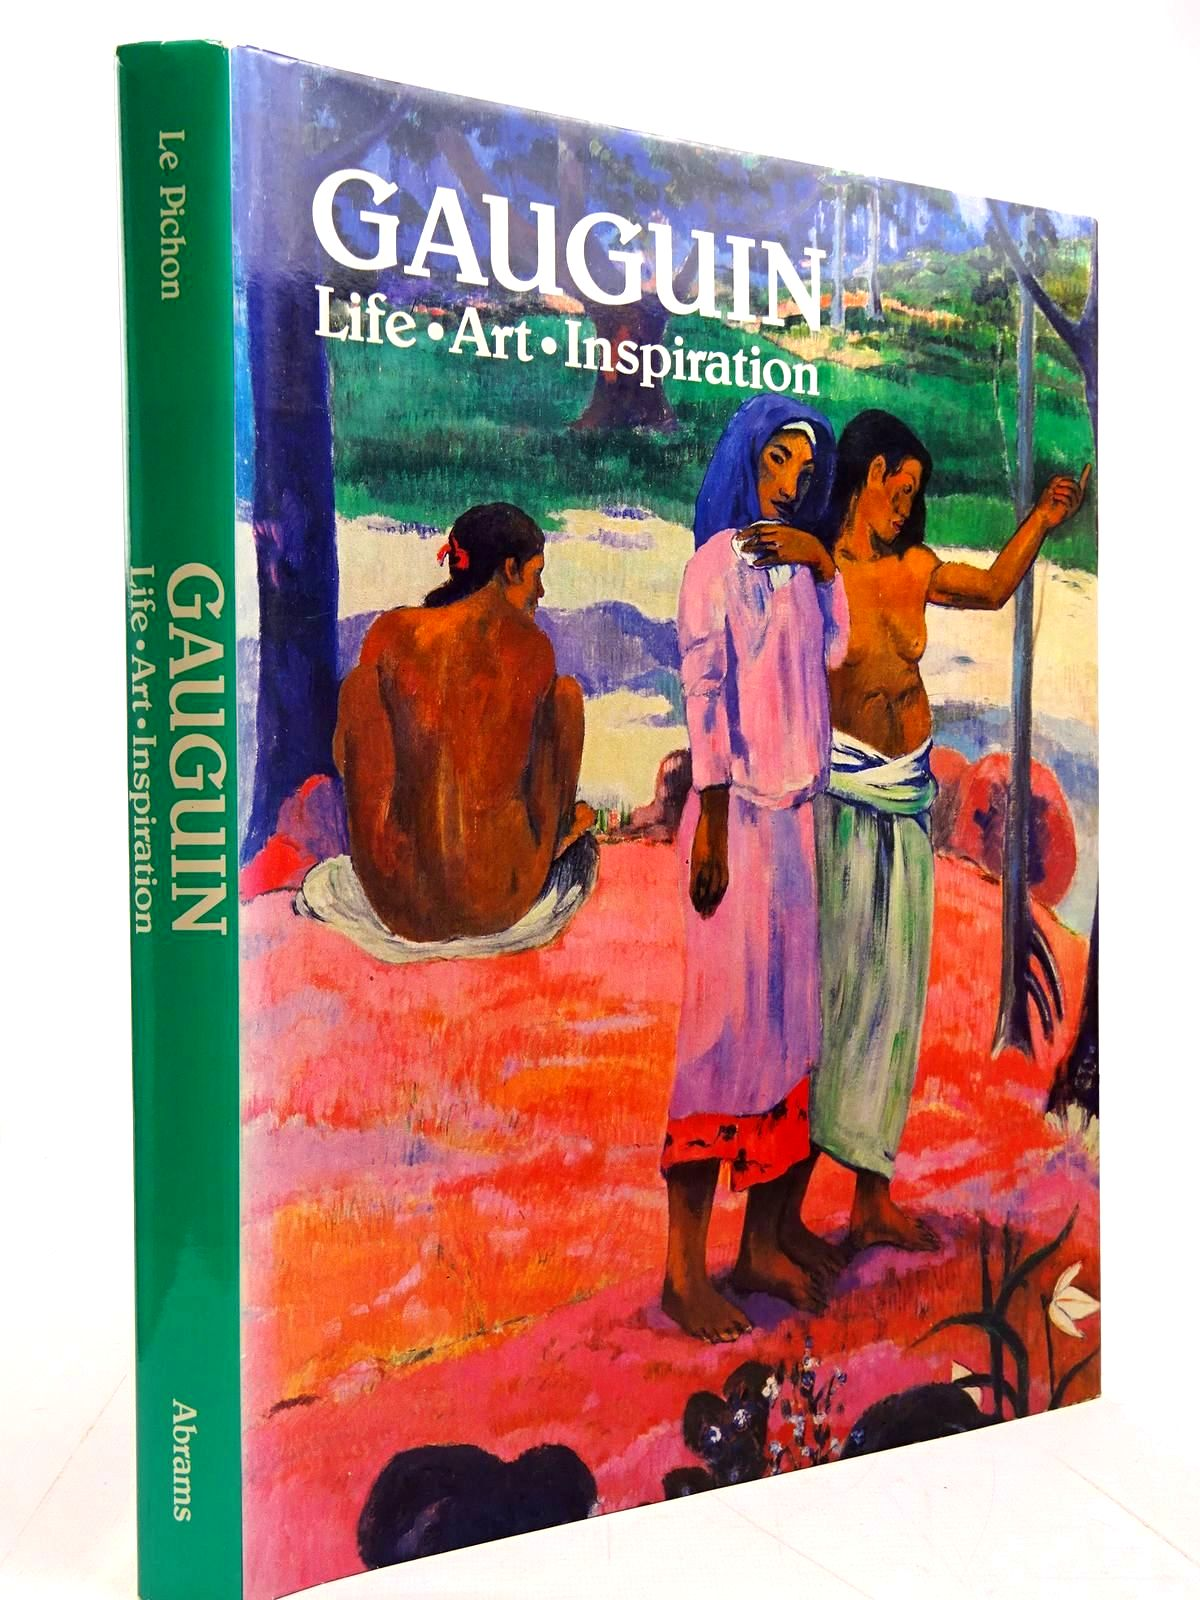 Photo of GAUGUIN LIFE ART INSPIRATION written by Le Pichon, Yann Paris, I. Mark illustrated by Gauguin, Paul published by Harry N. Abrams, Inc. (STOCK CODE: 2131001)  for sale by Stella & Rose's Books